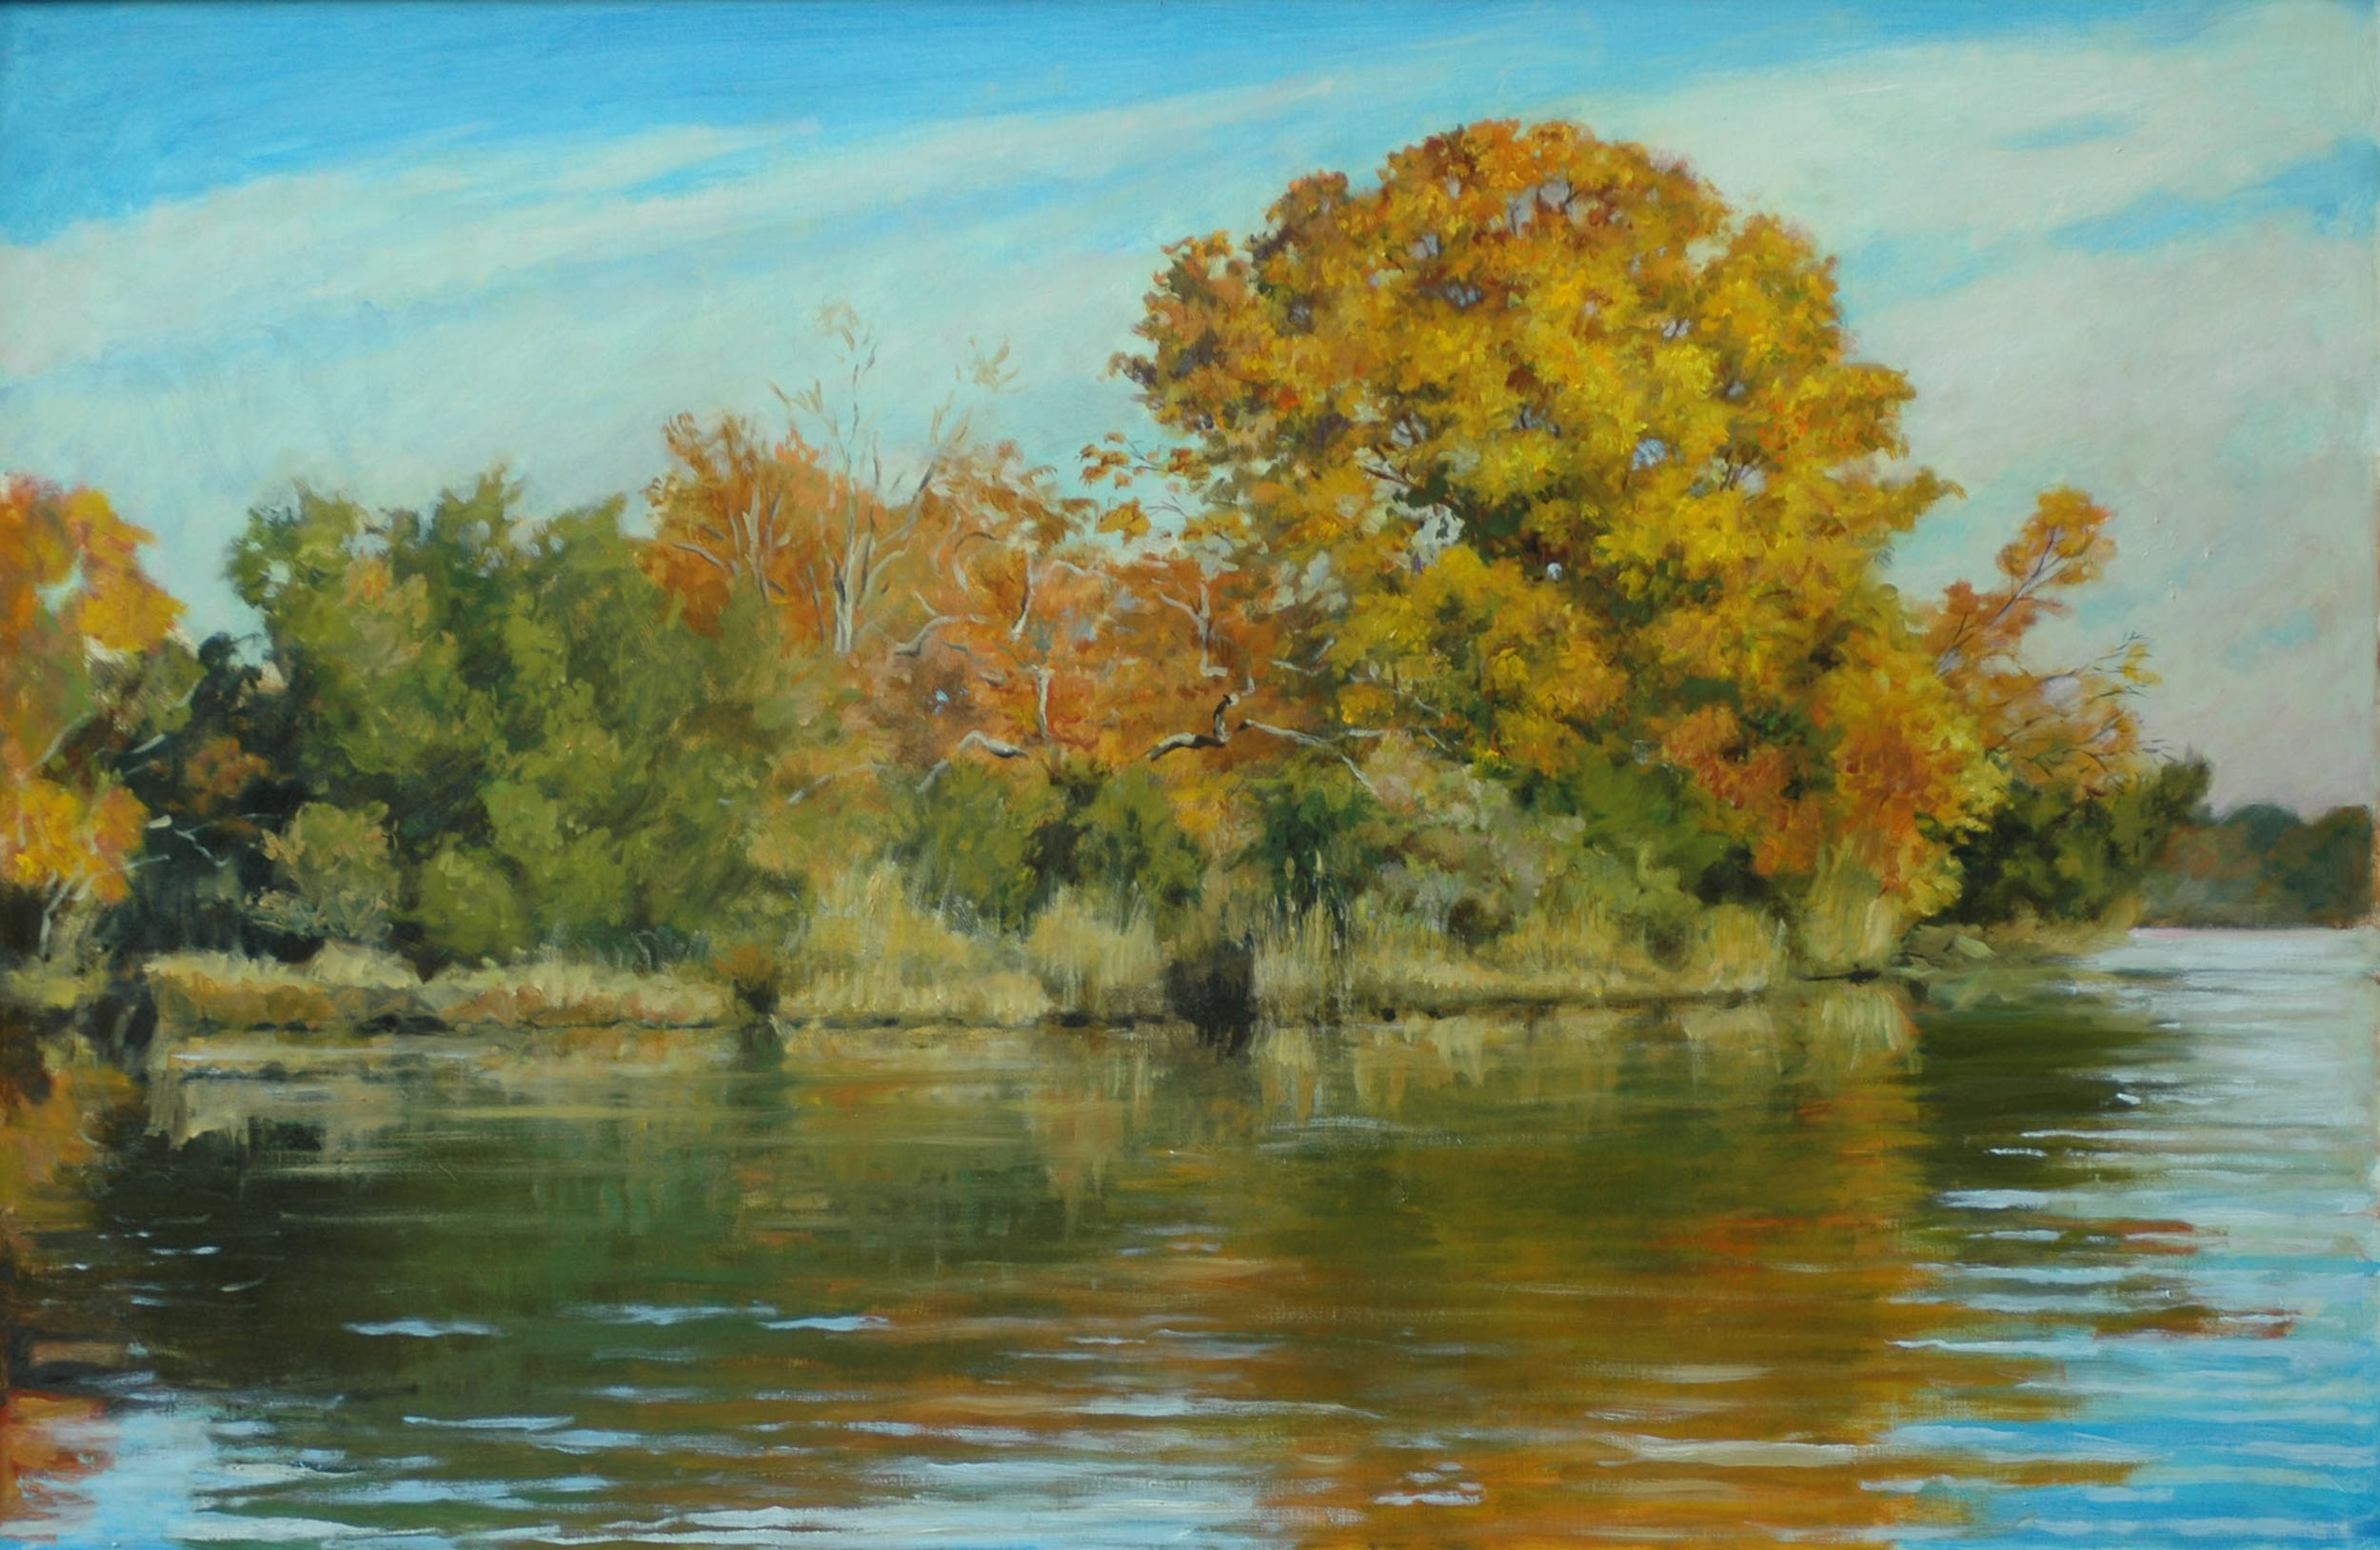 "Fall on Herring Creek, 30"" x 40"", Sold"